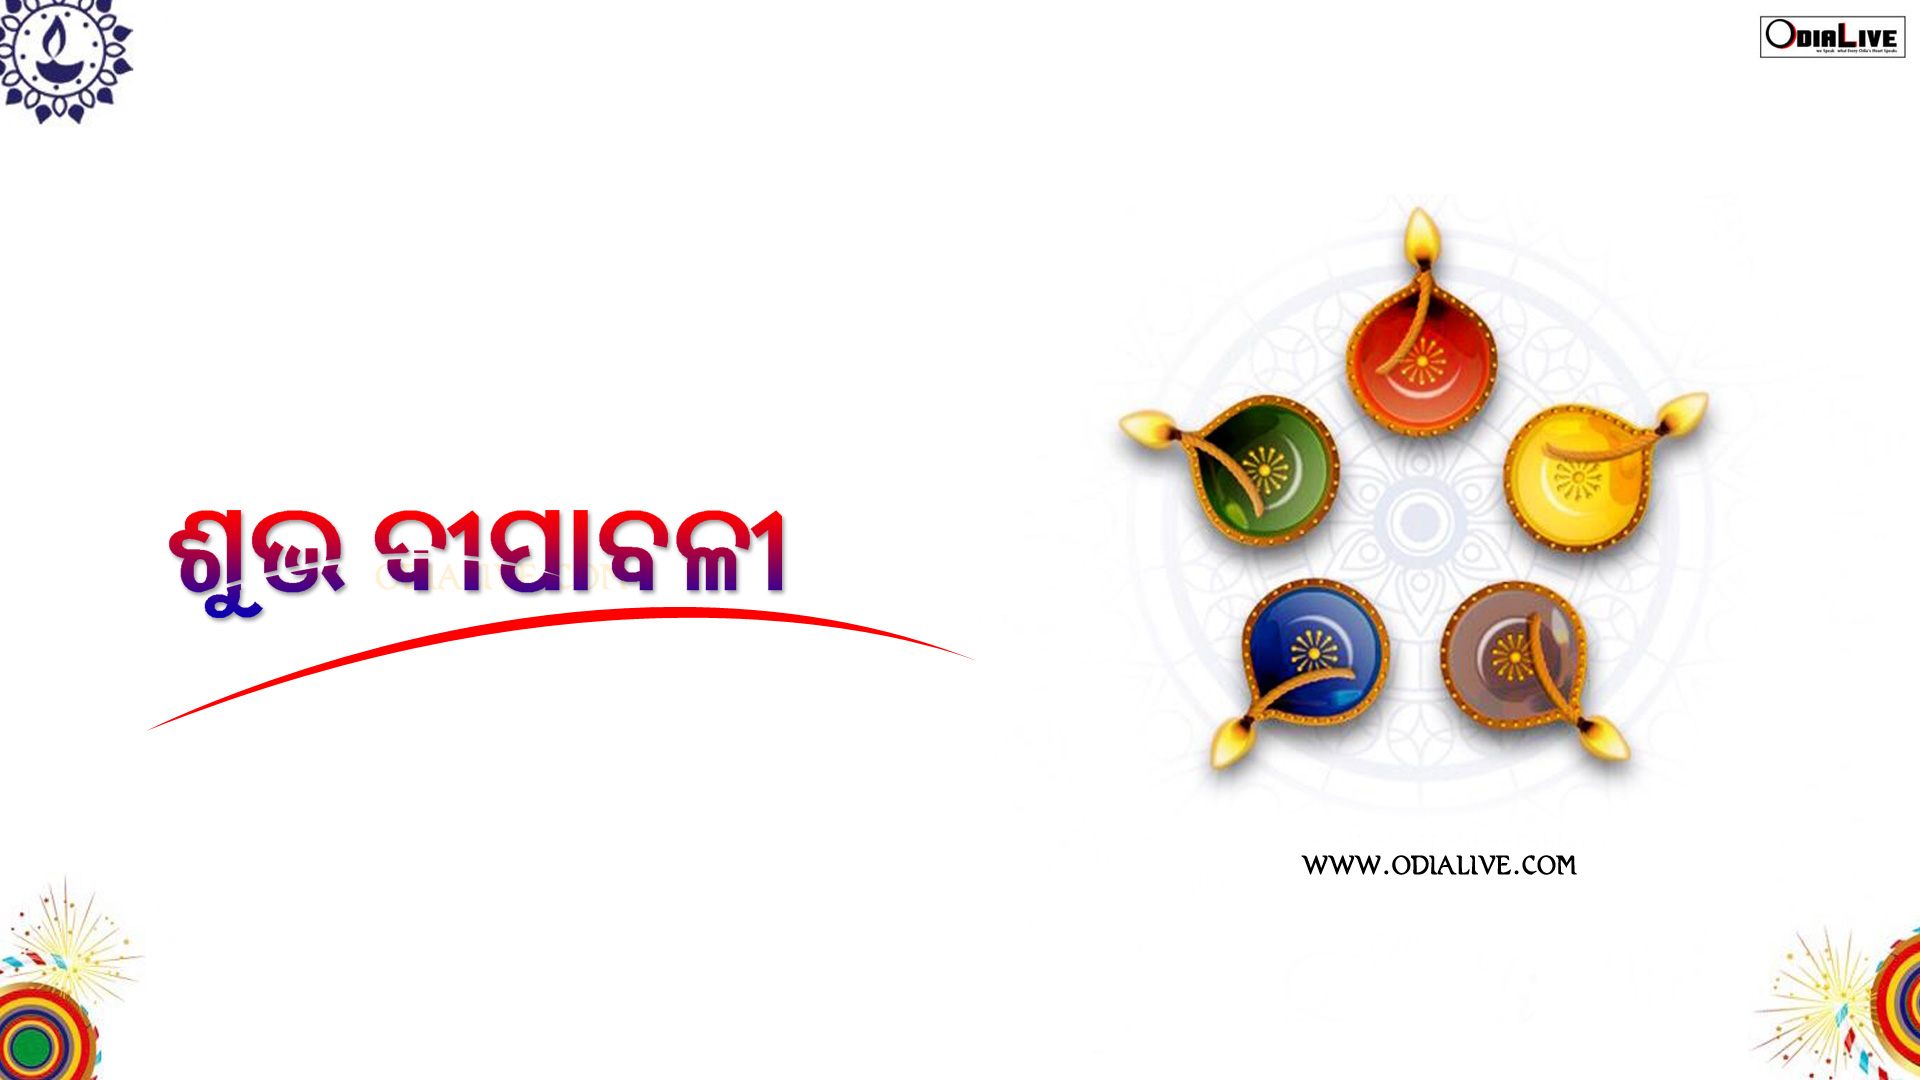 odia-diwali-greetings